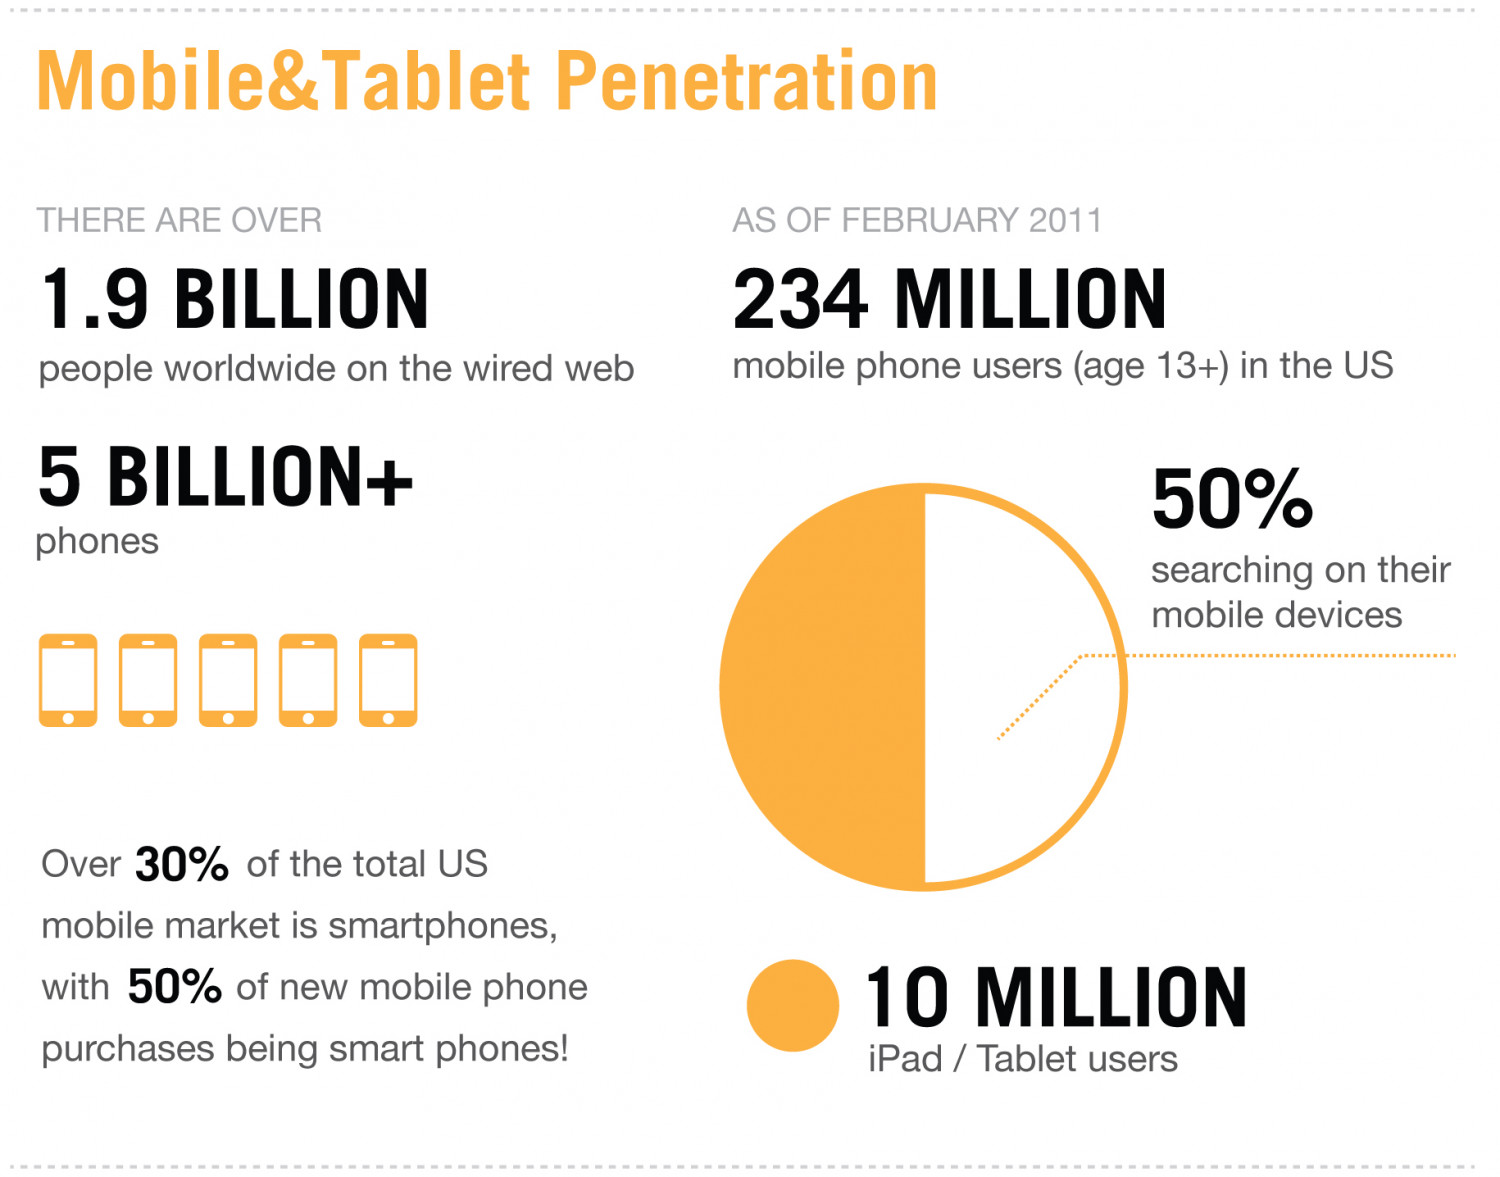 Making Mobile Marketing Count - Part 2 Infographic